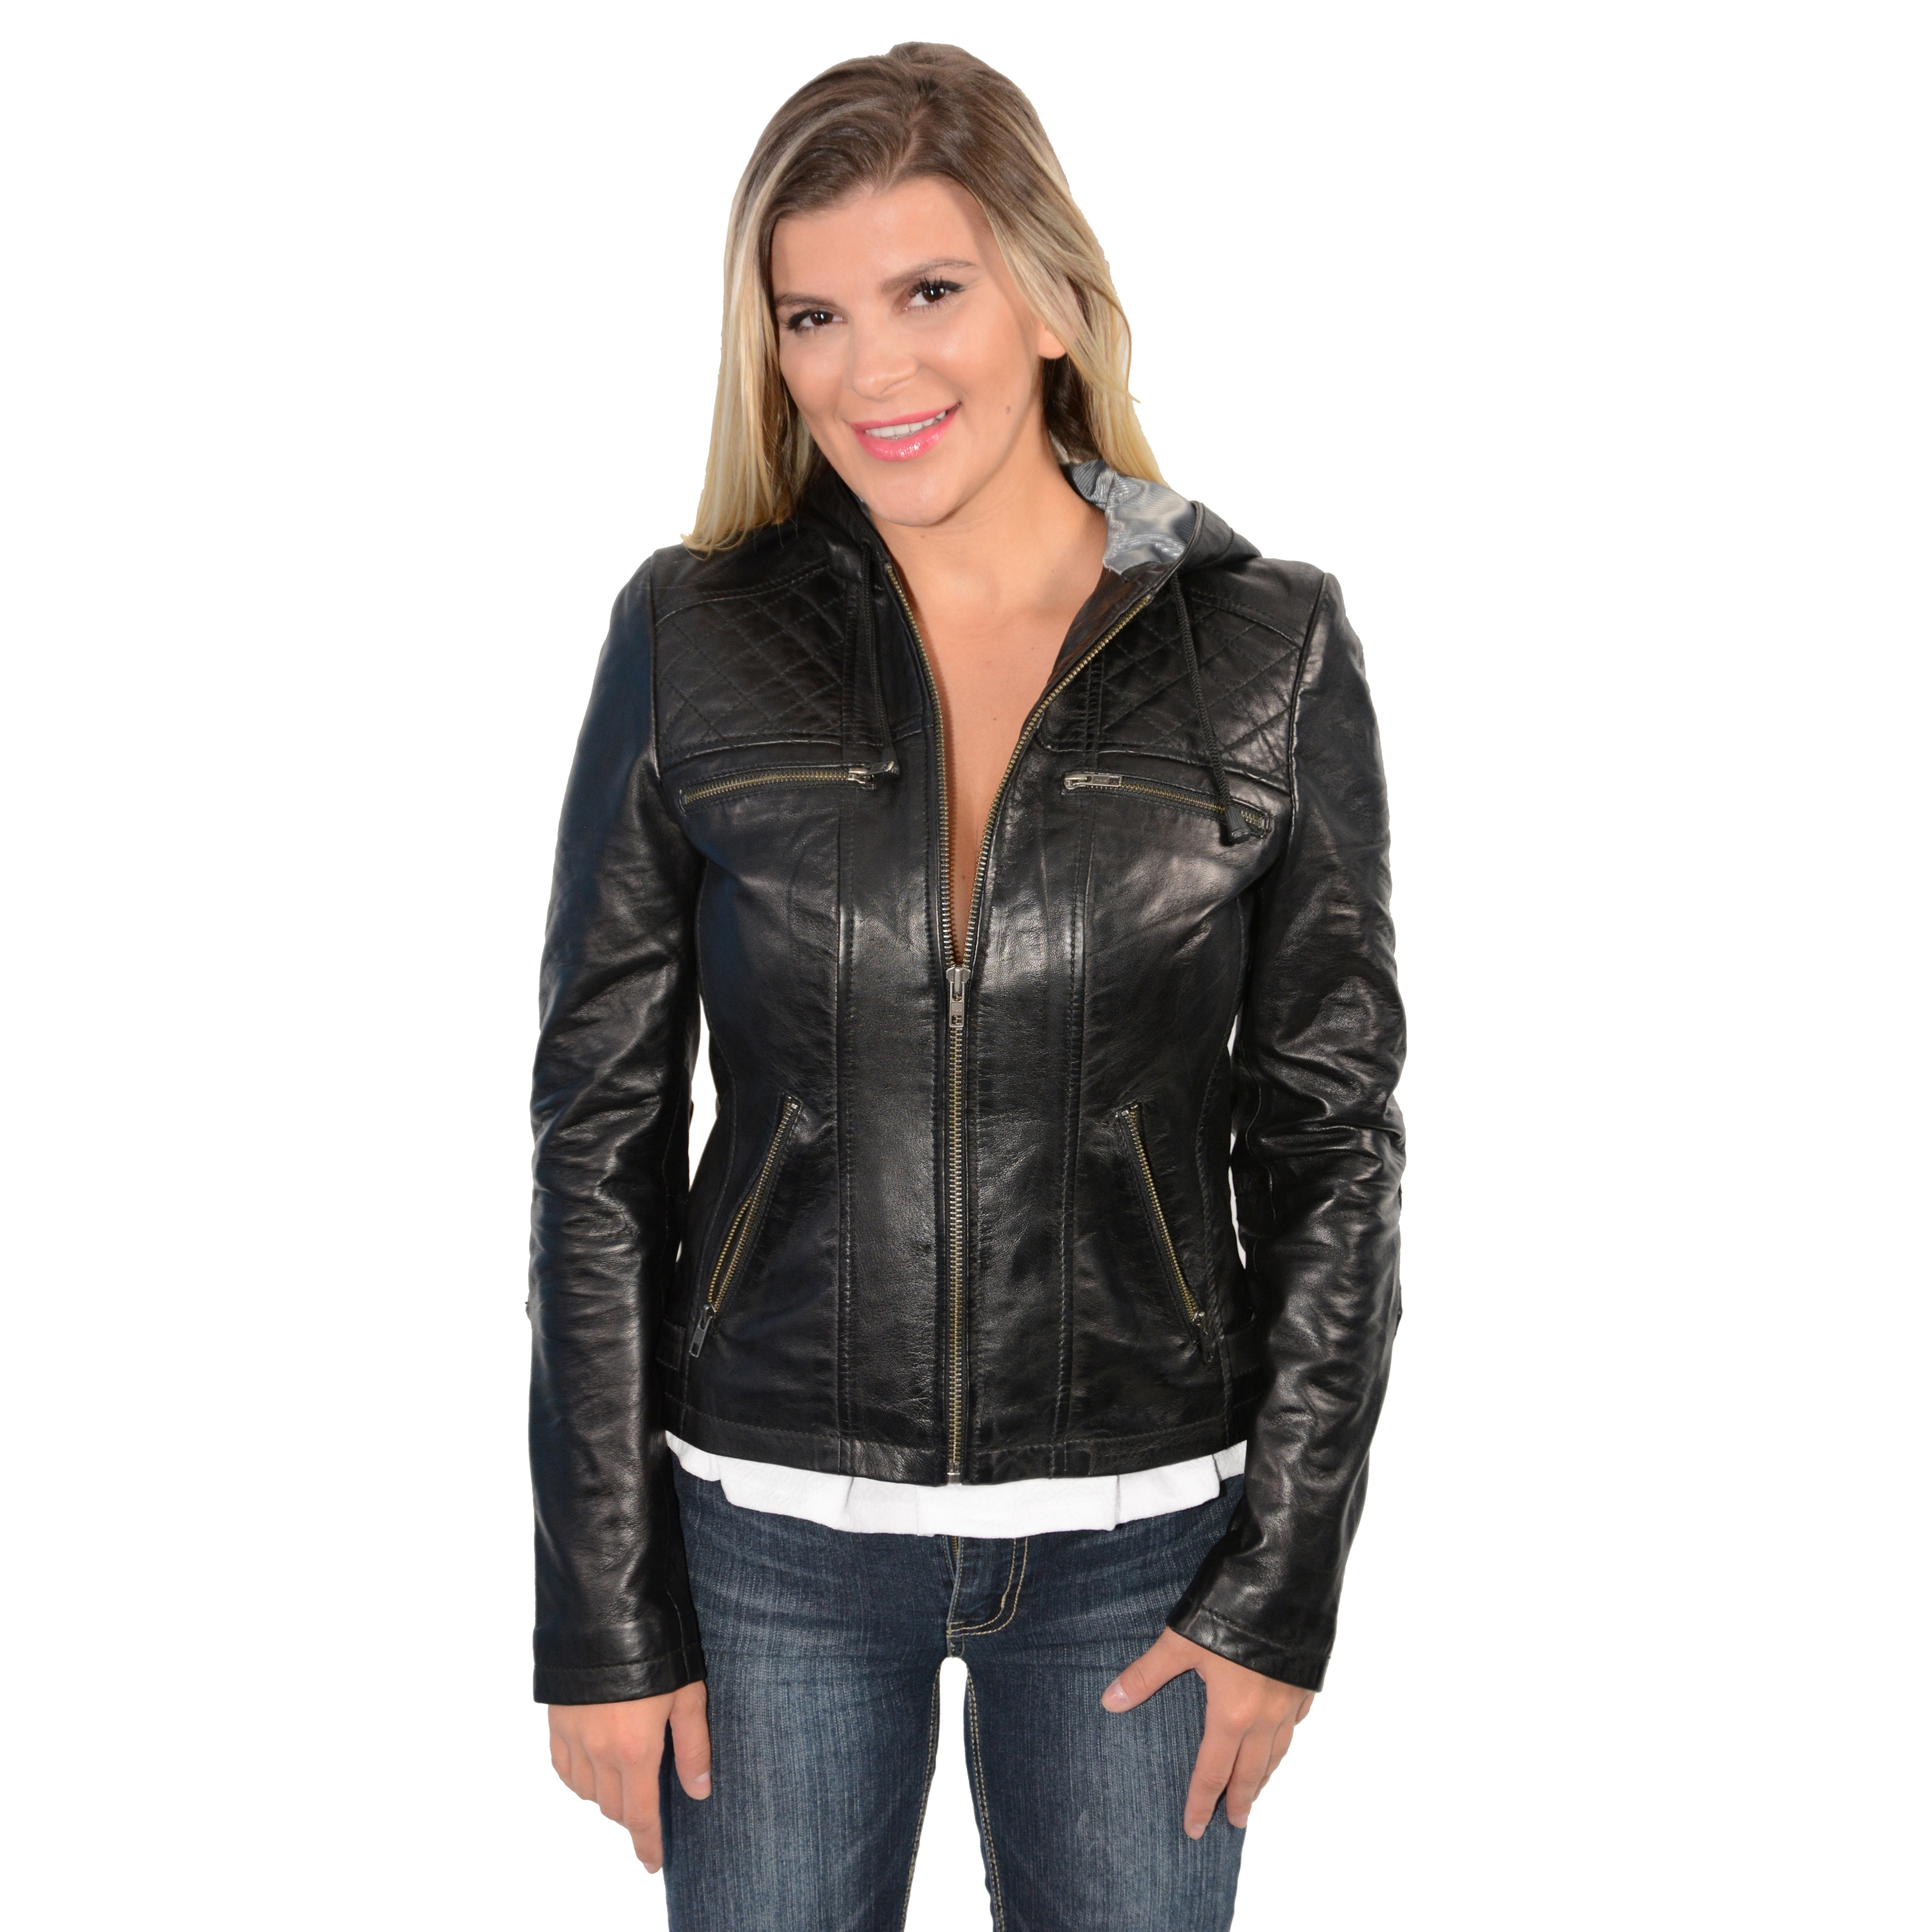 34f052e21 Women's Outerwear | Find Great Women's Clothing Deals Shopping at ...